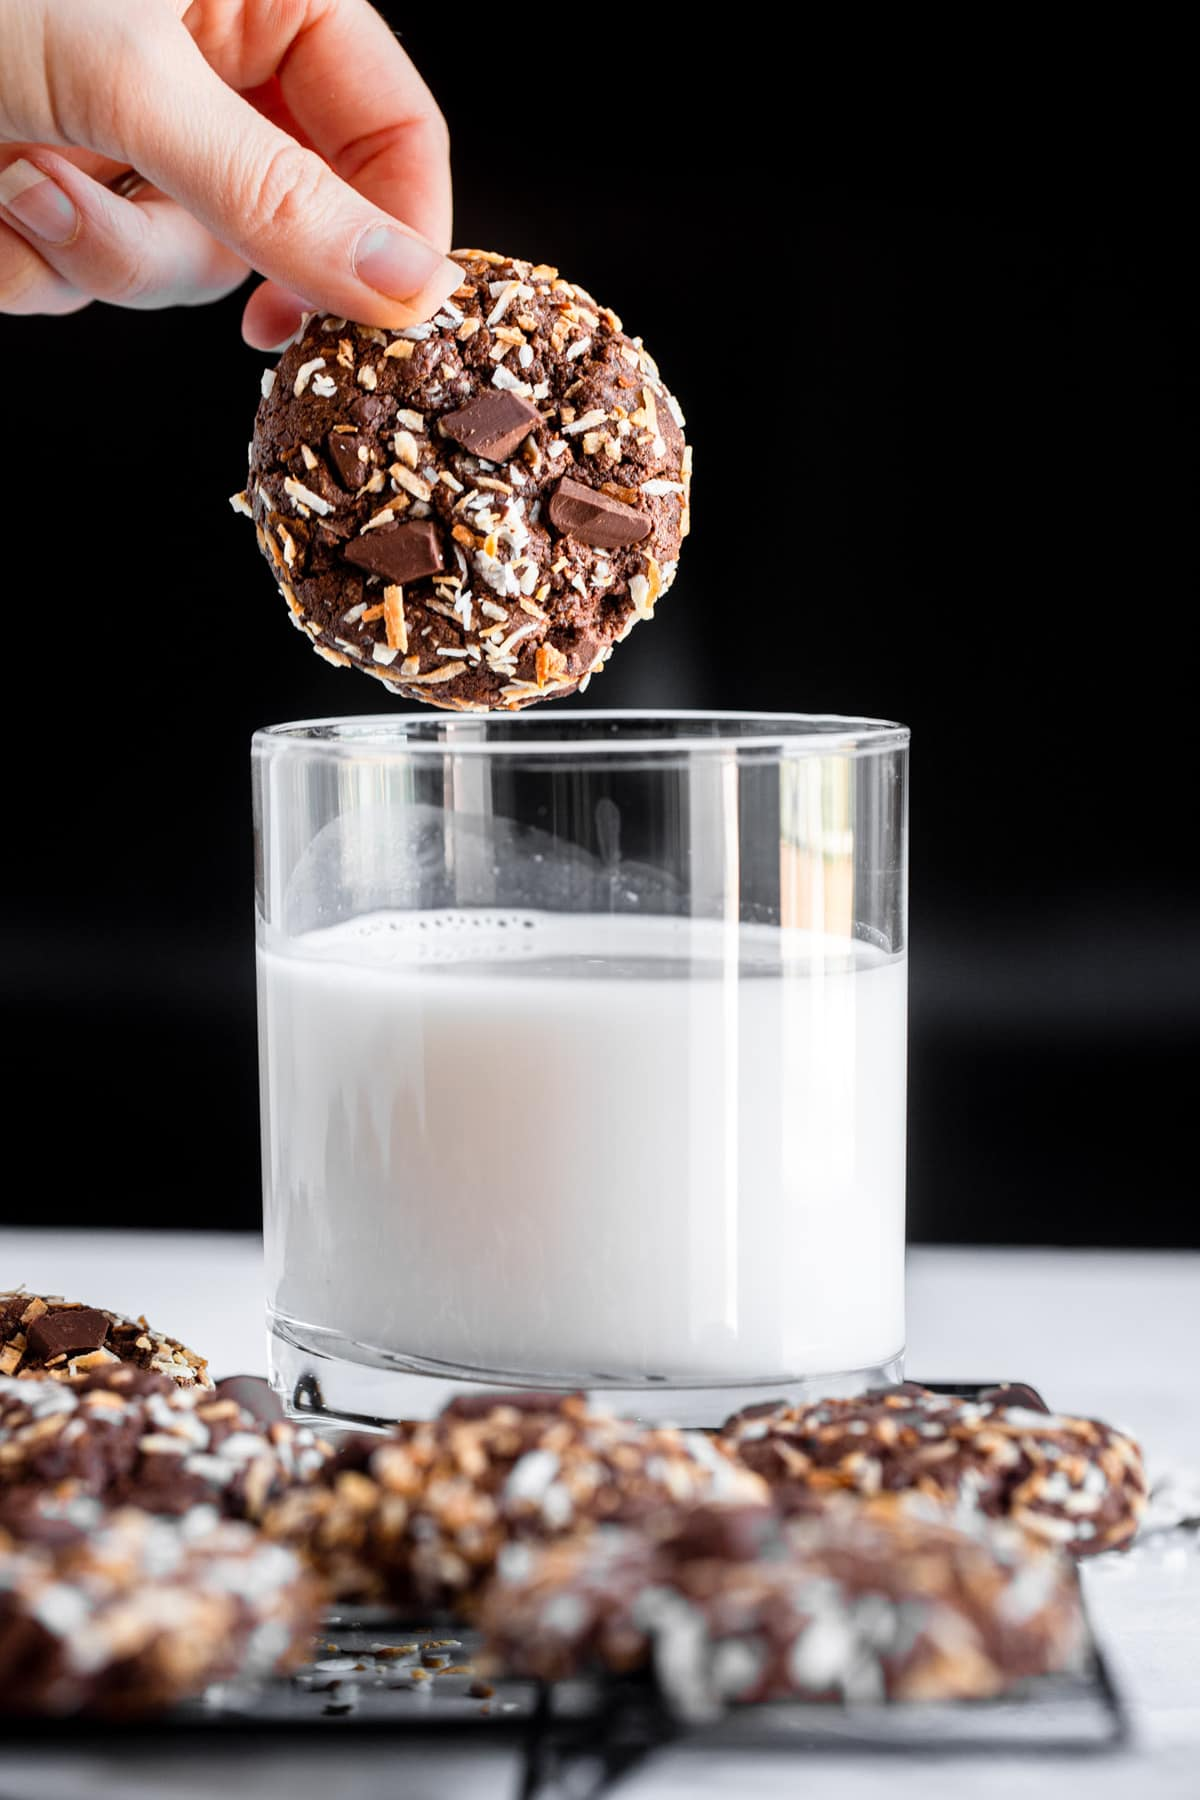 quinoa cookie being dipped into a glass on milk